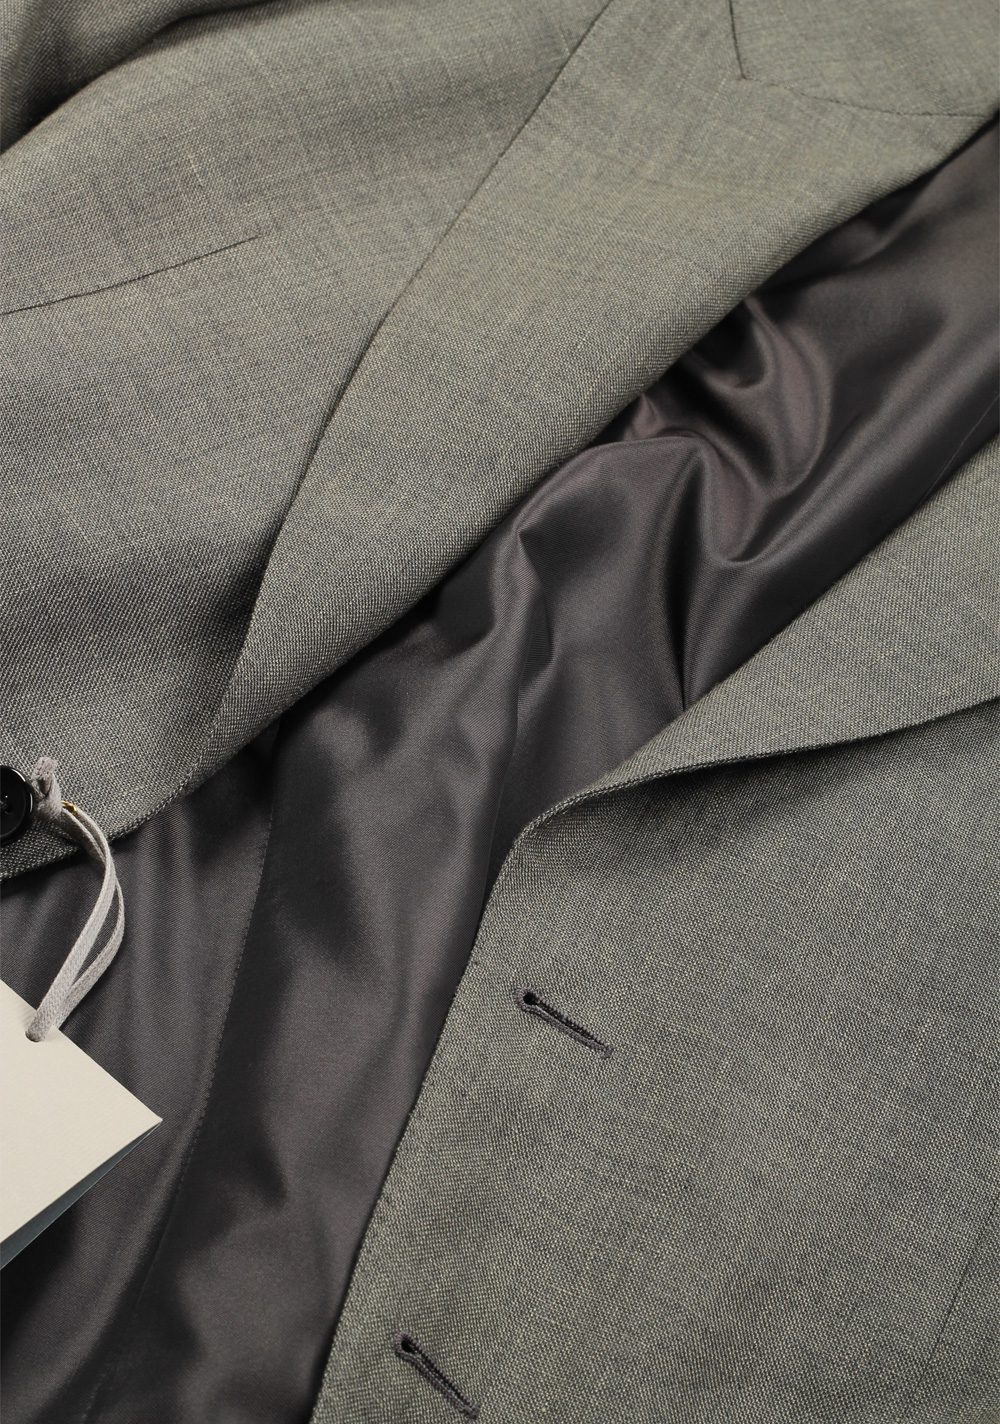 TOM FORD Shelton Greenish Gray Suit Size 48 / 38R U.S. | Costume Limité